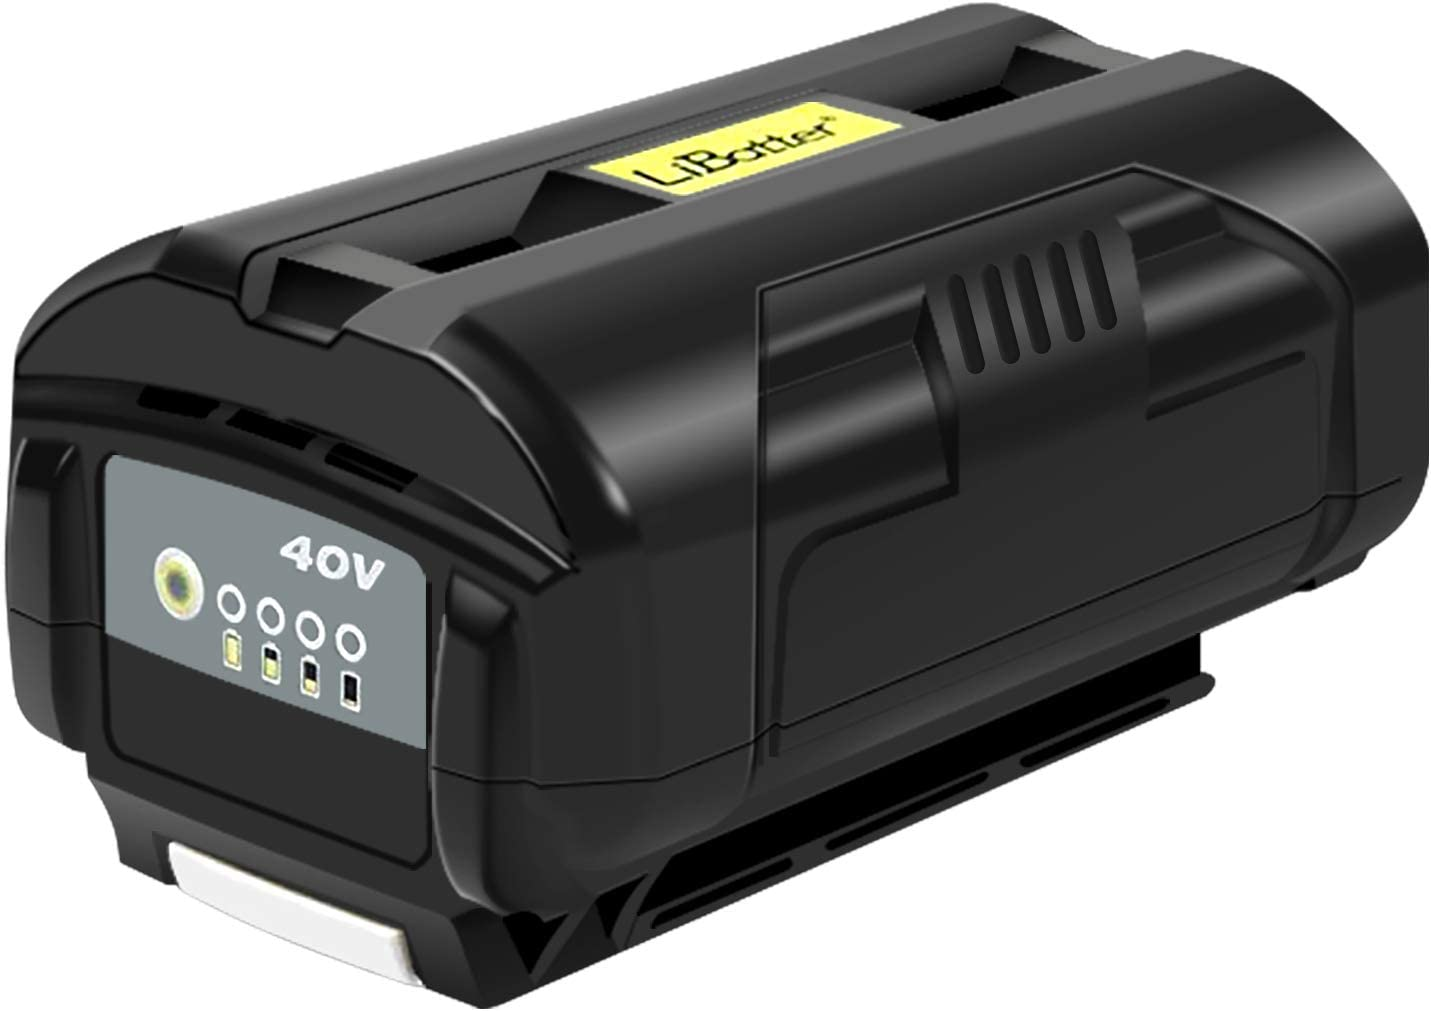 Powerful 40V Battery 6Ah 240Wh Compatible with Ryobi 40V Tools OP4015 OP4026 OP40201 OP40261 OP4030 OP40301 OP4040 OP40401 OP4050 OP40501 OP40601